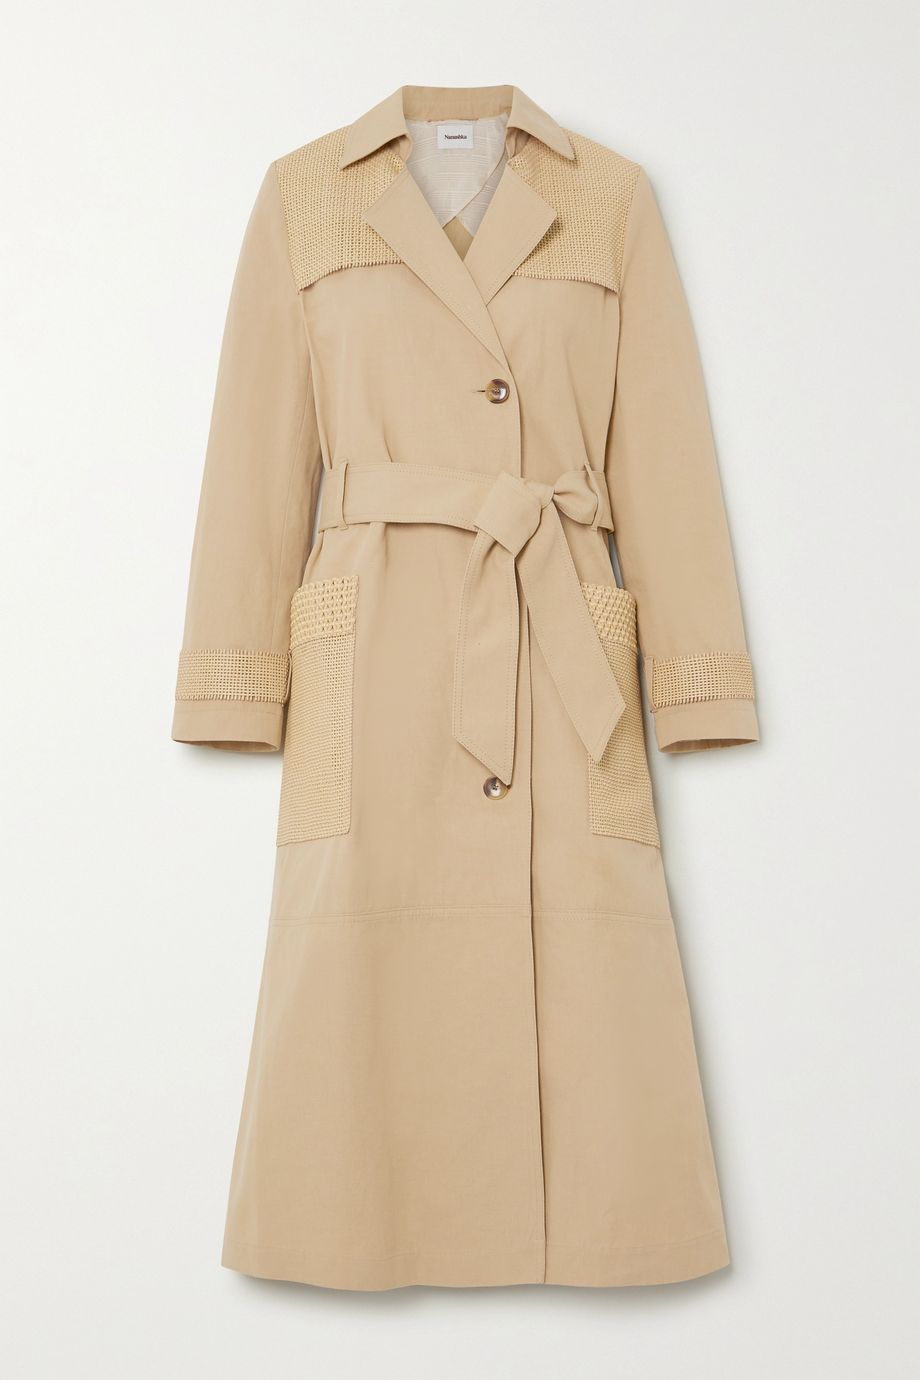 Nanushka Alex vegan leather-trimmed cotton and linen-blend canvas trench coat